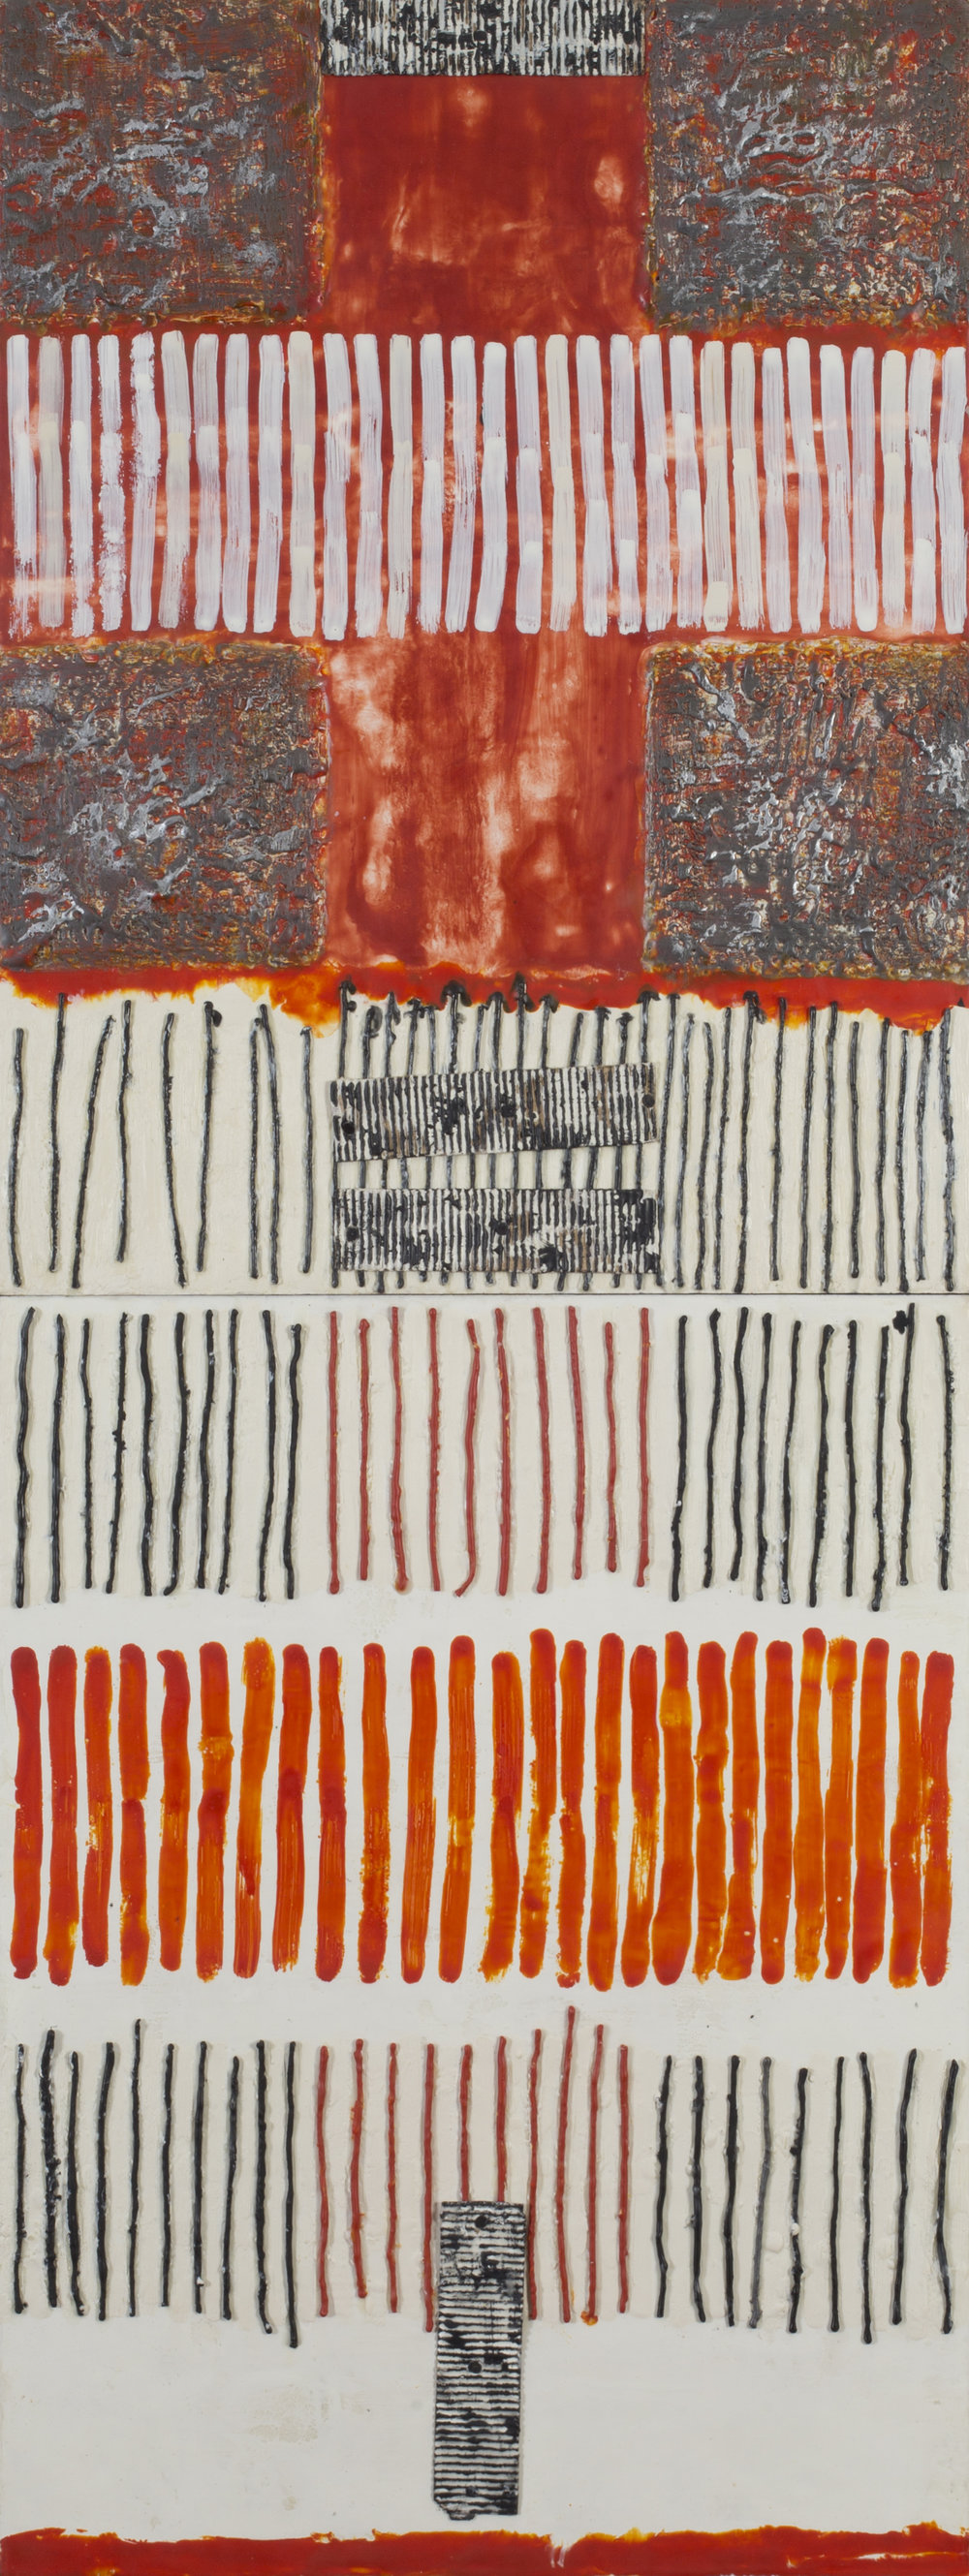 Cruciform: Study in Orange, Black & White encaustic, string, cardboard, 18x48""